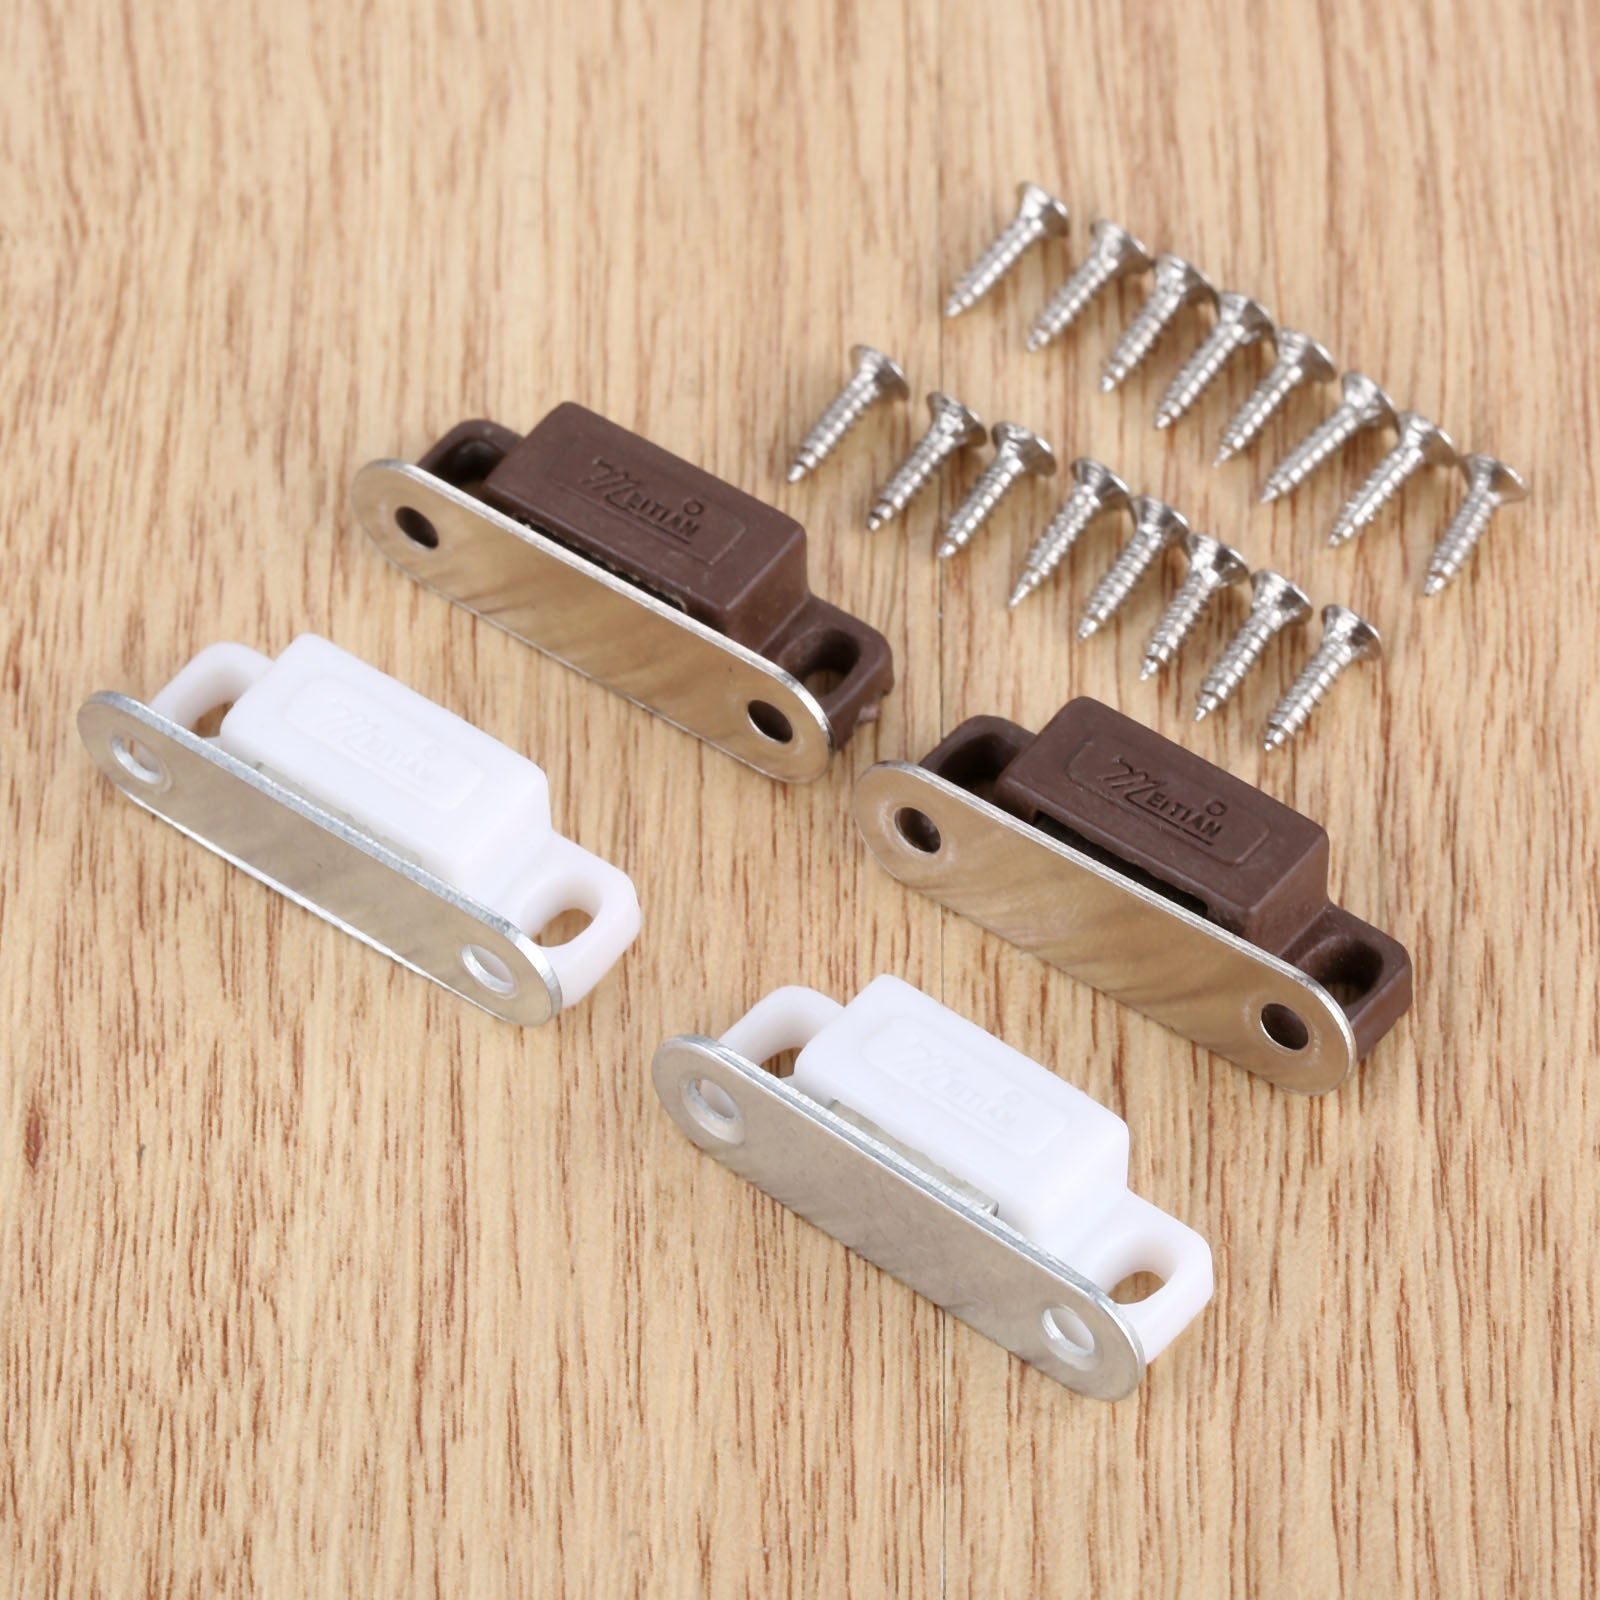 5pcs Small Magnetic Door Catches Kitchen Cupboard Wardrobe Cabinet L Slowmoose